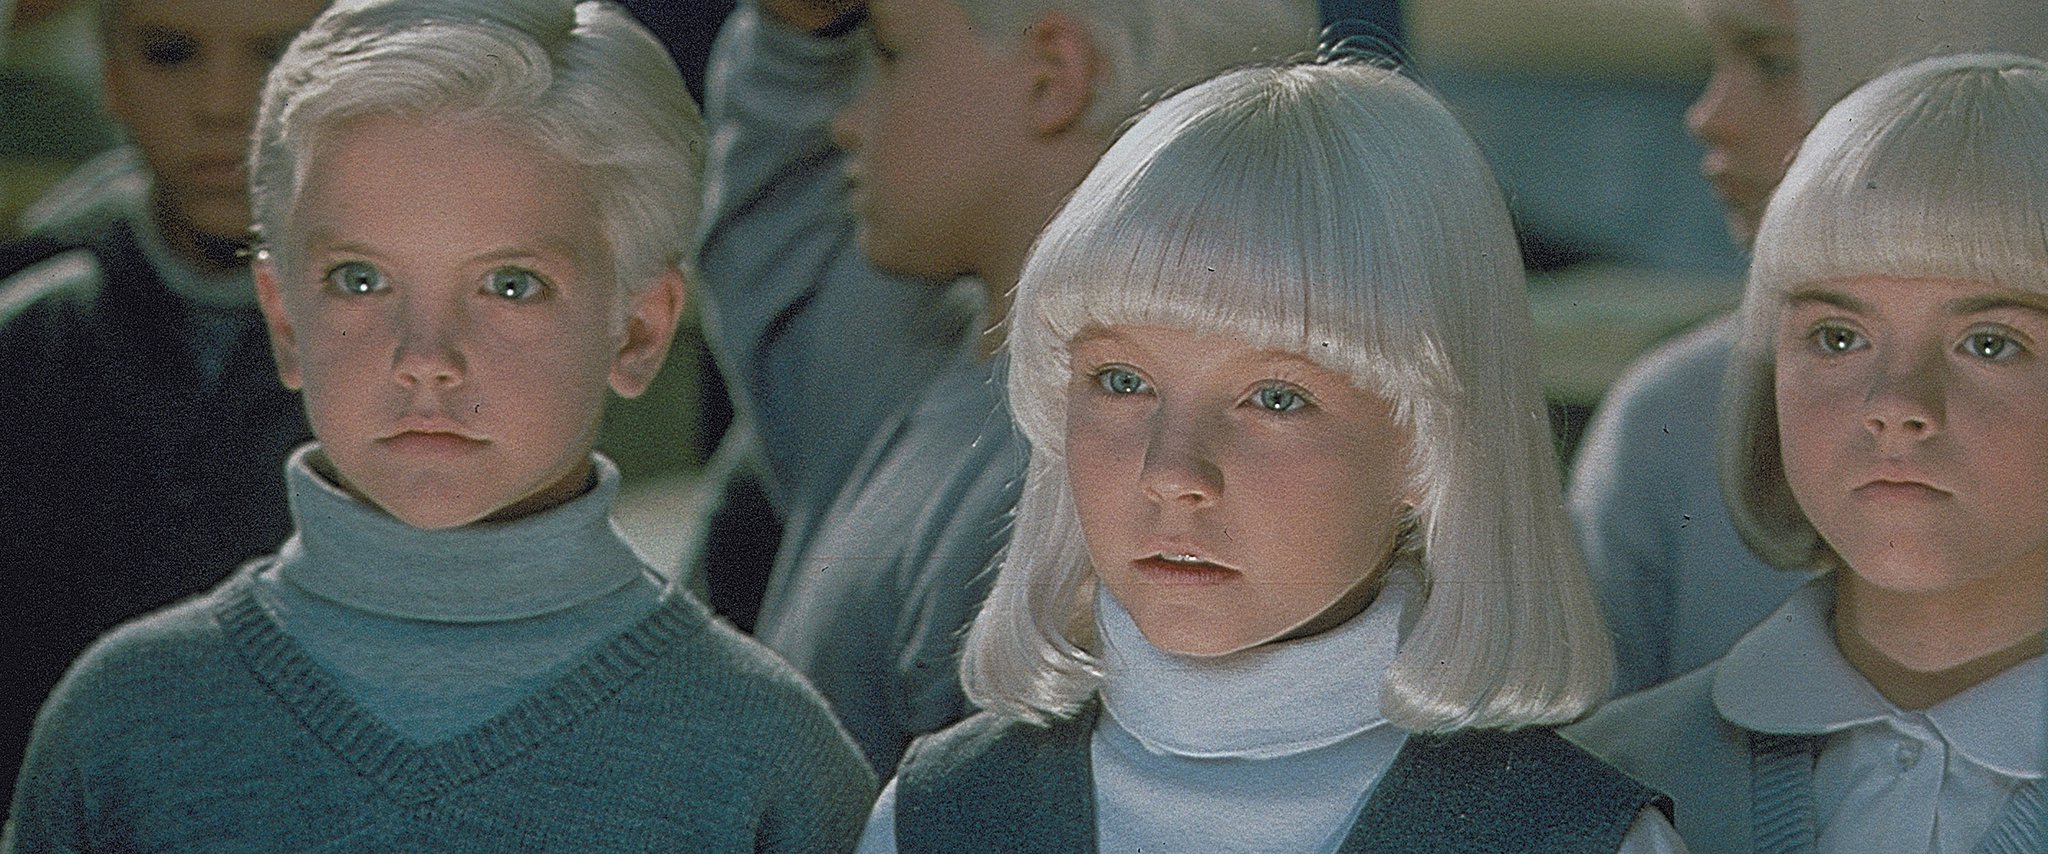 2048x854 > Village Of The Damned Wallpapers